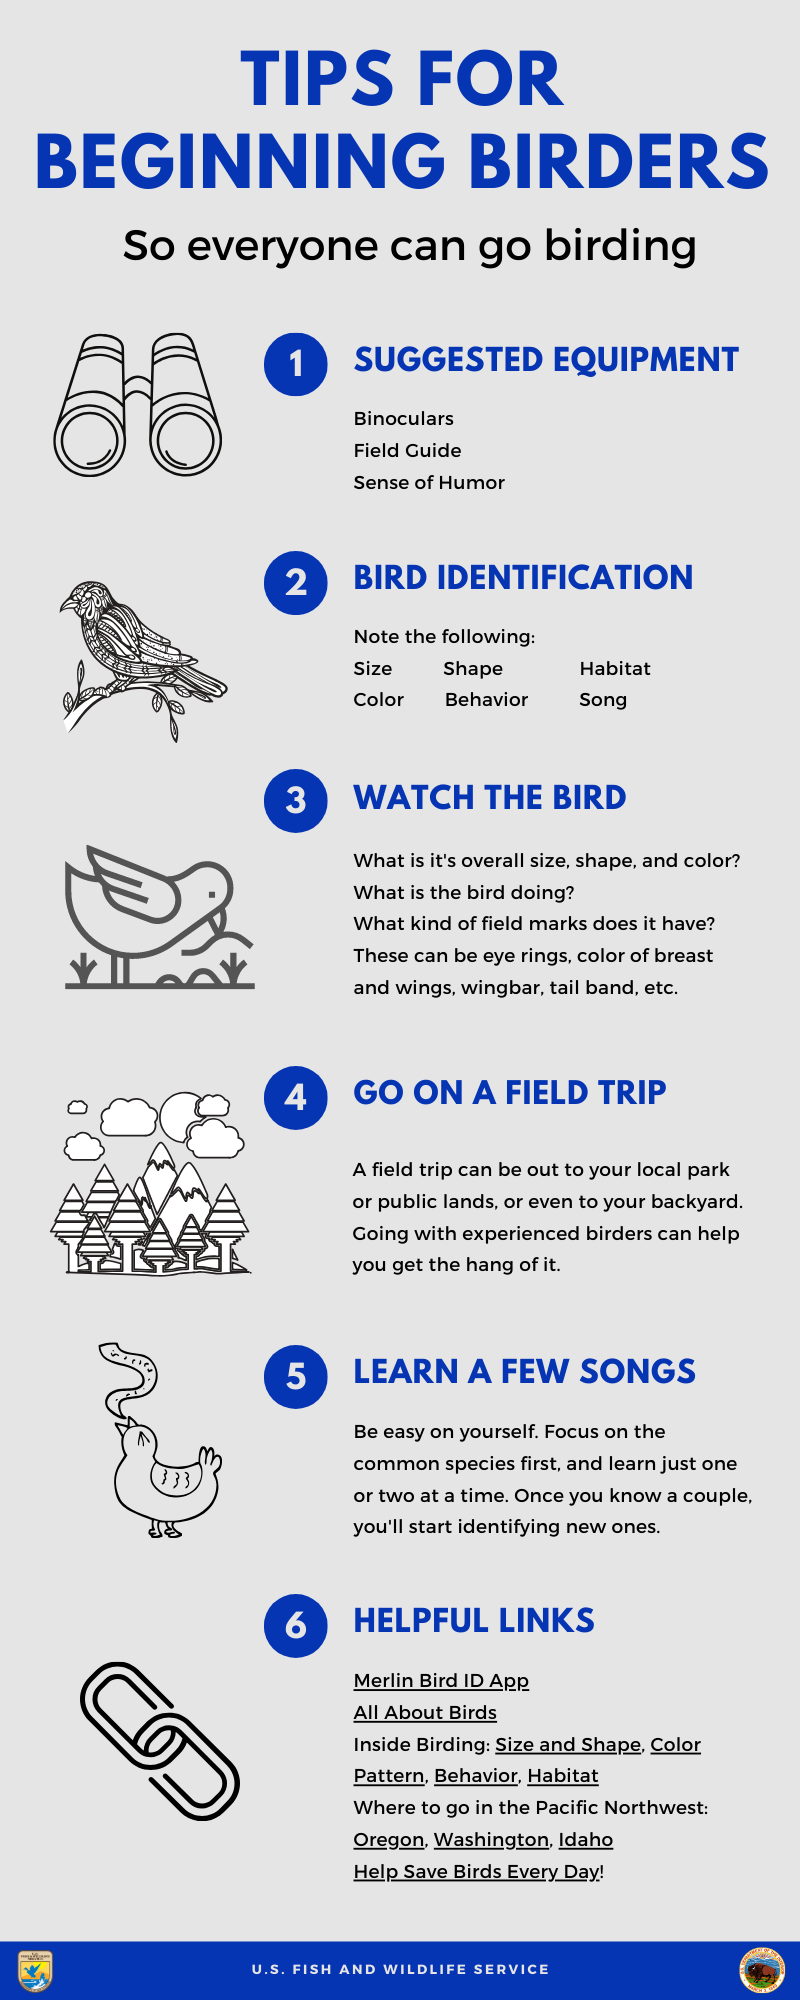 Tips for beginning birders graphic in English.